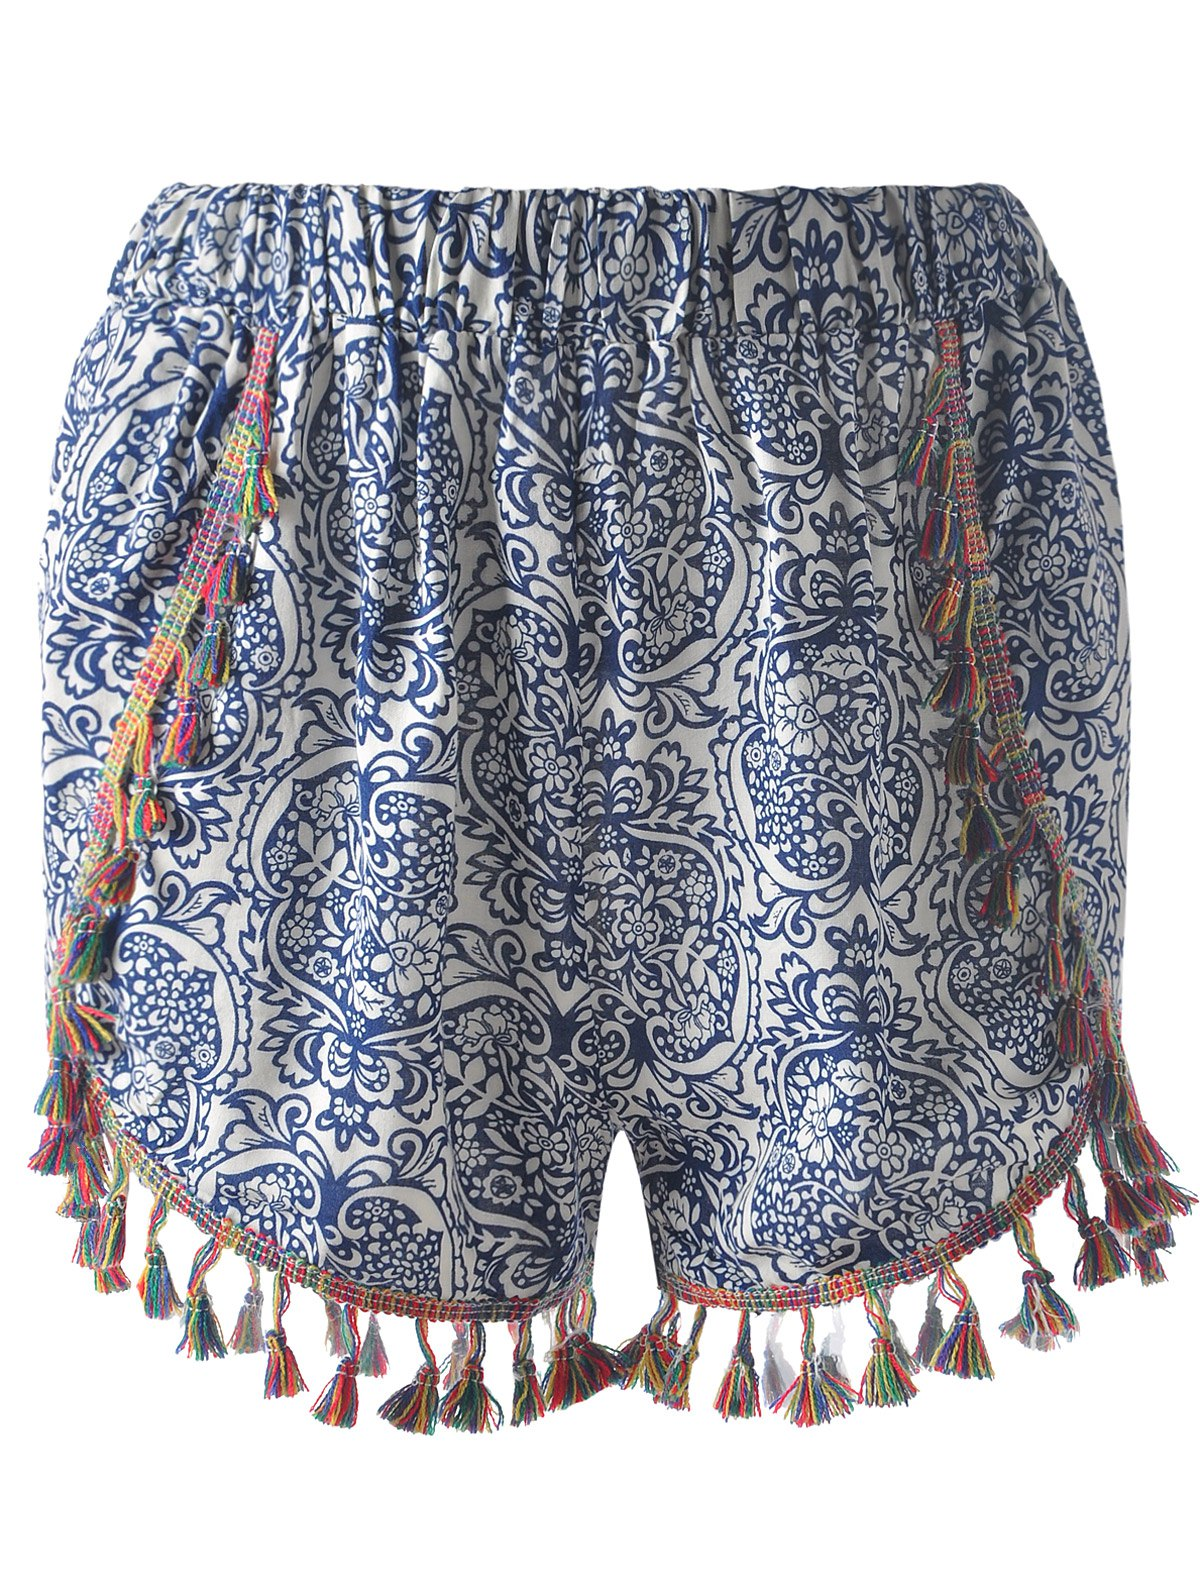 Casual Slimming Elastic waist Tassel Printing Ethnic Style Shorts For Women - PURPLISH BLUE ONE SIZE(FIT SIZE XS TO M)